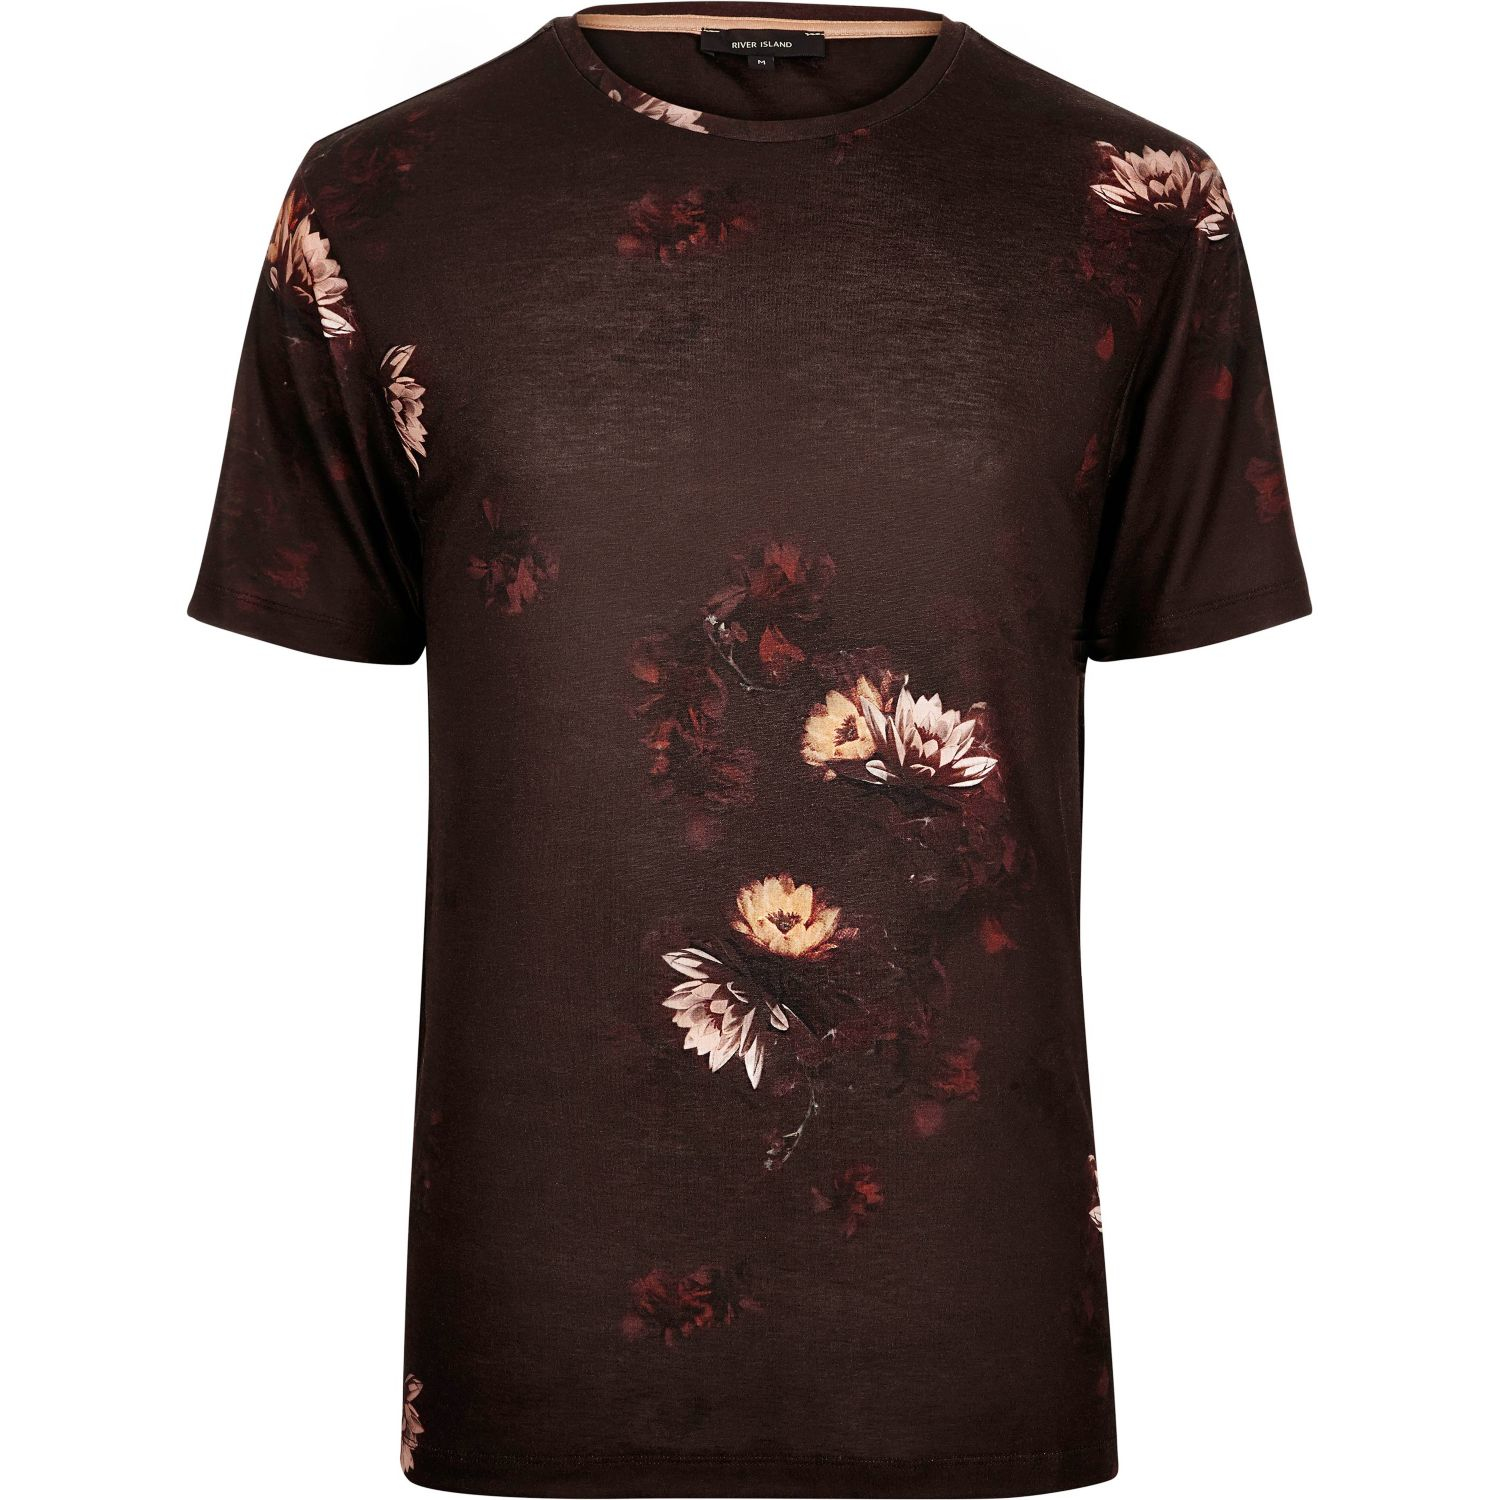 River island dark red faded floral print t shirt in red for Faded color t shirts